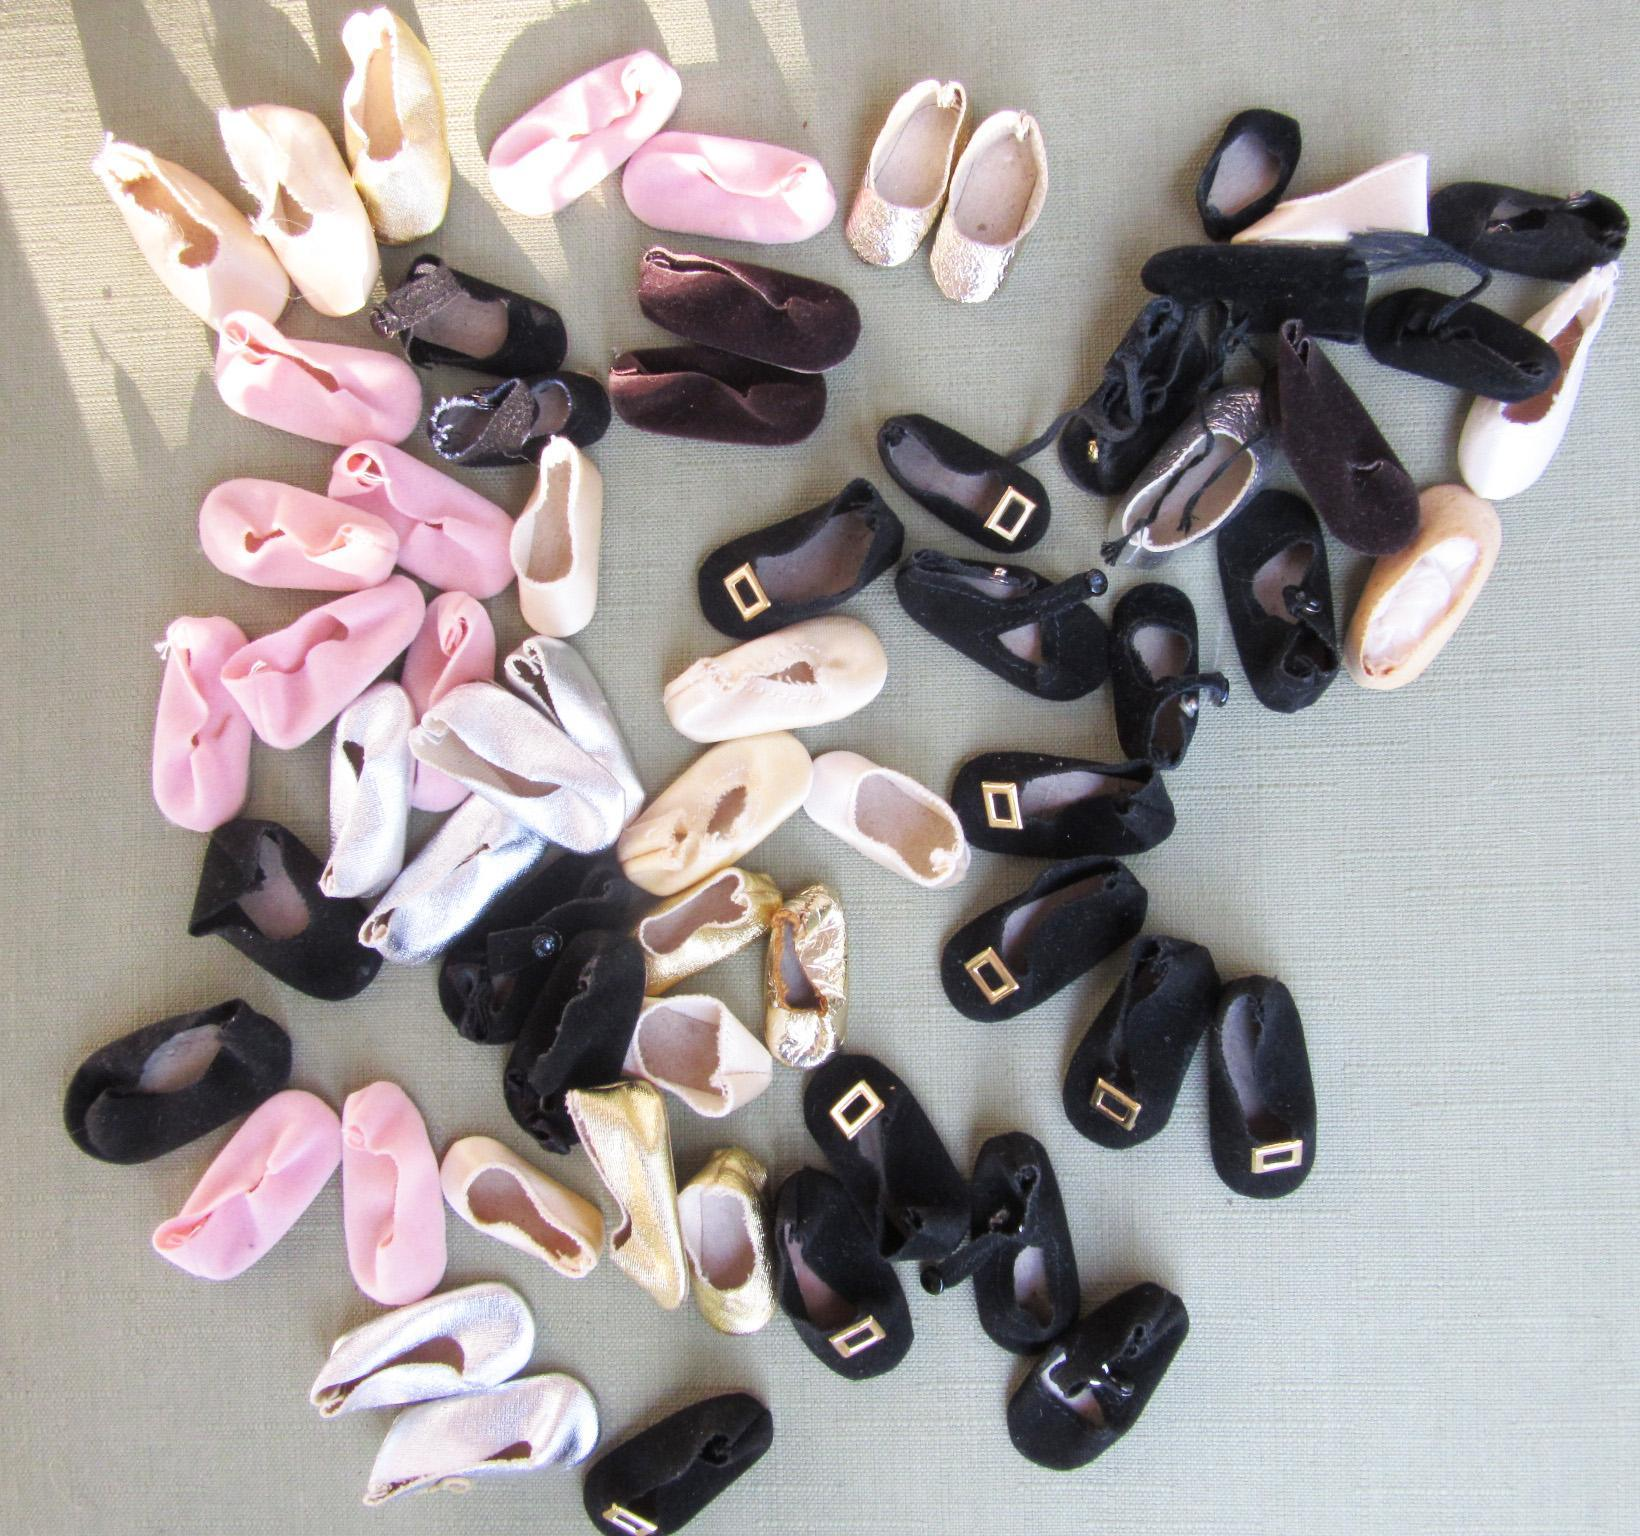 Group of 24 Pairs of Madame Alexander Shoes and 13 Singles